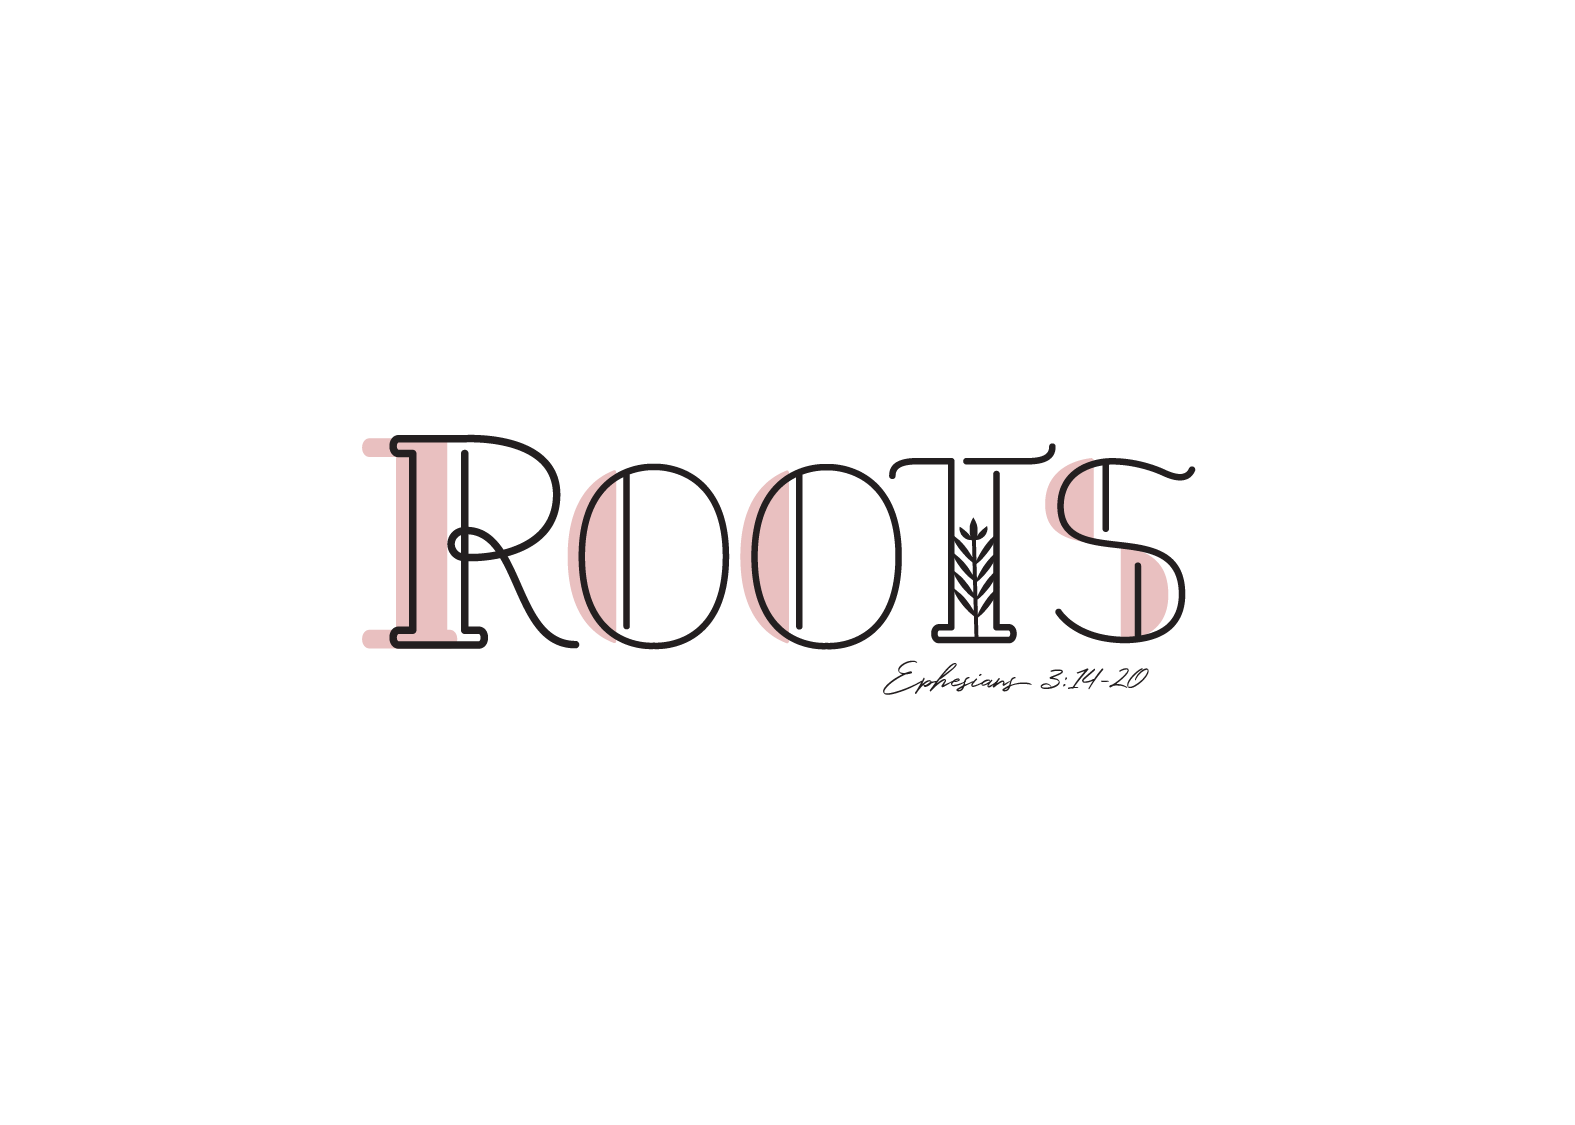 roots_final-01